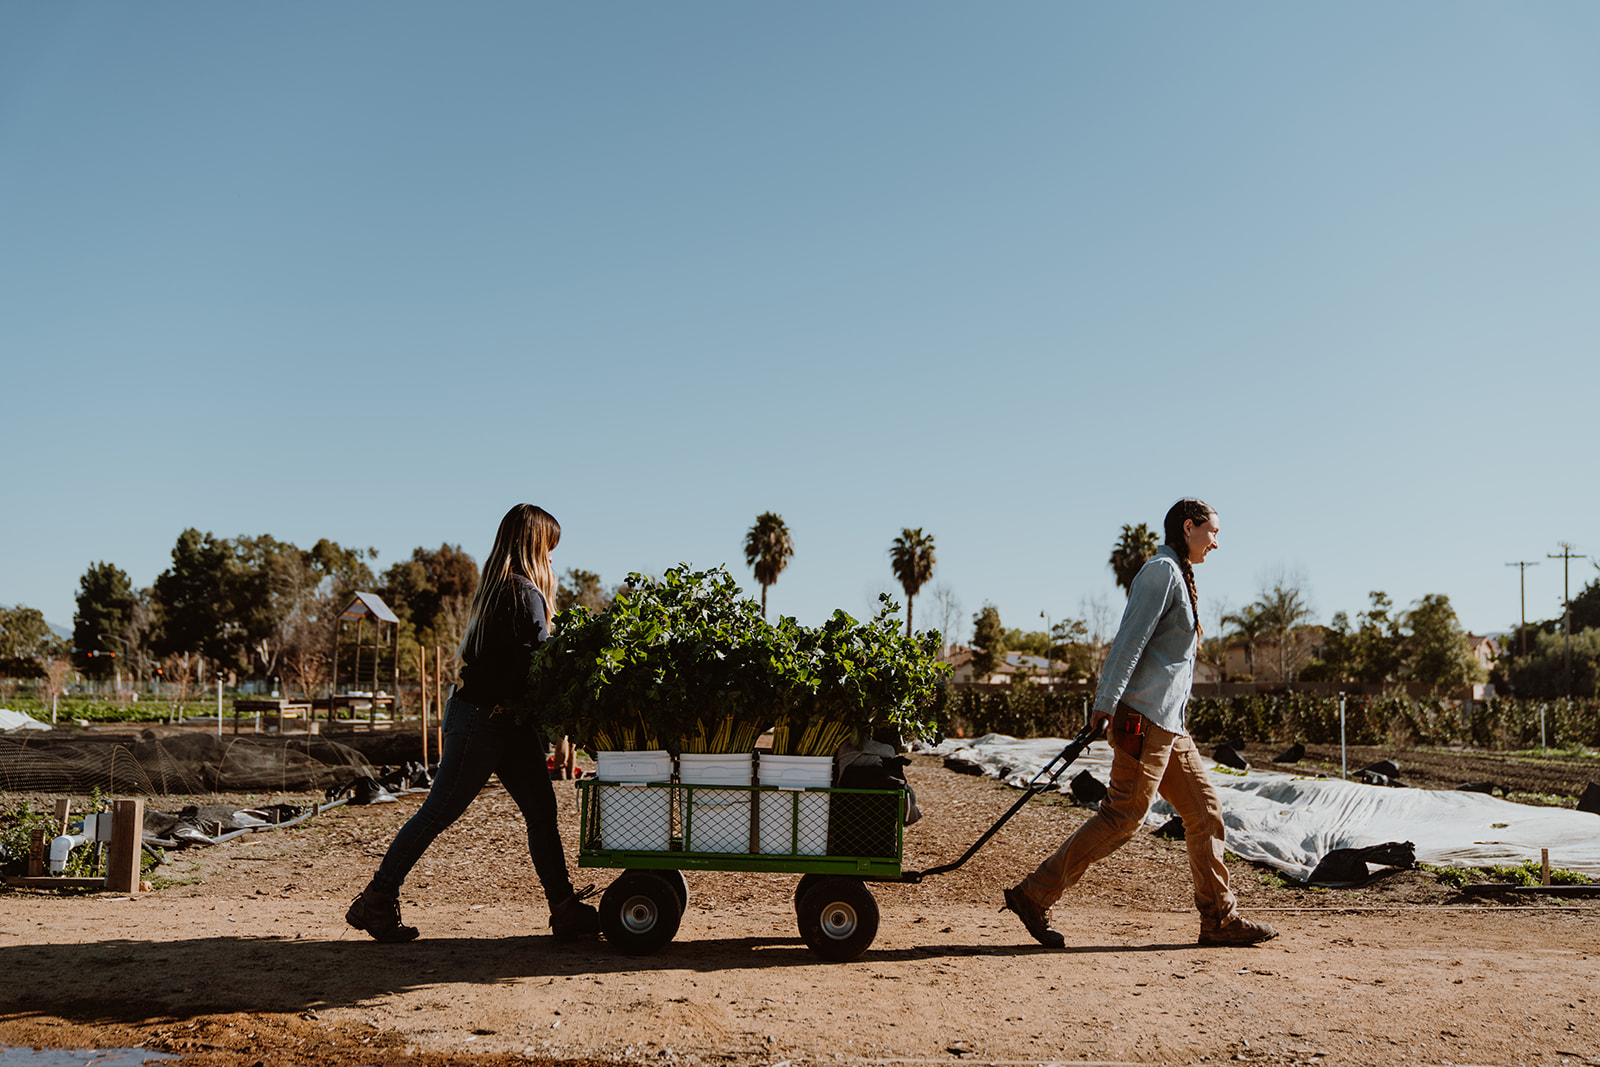 Farm workers walking through fields with cart.